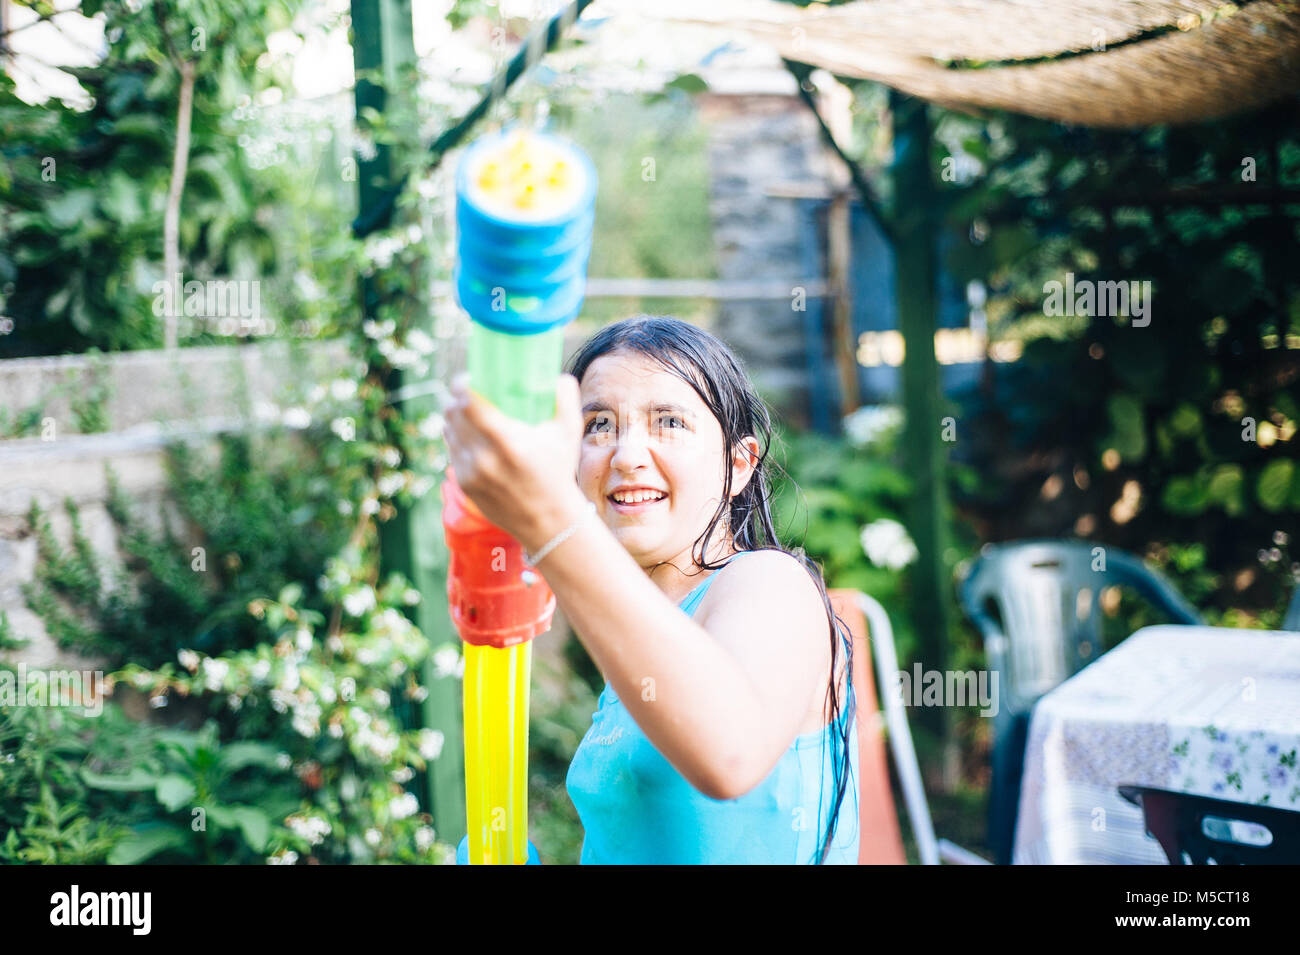 children play in the garden with guns and water rifles on a sunny summer day having a lot of fun - Stock Image